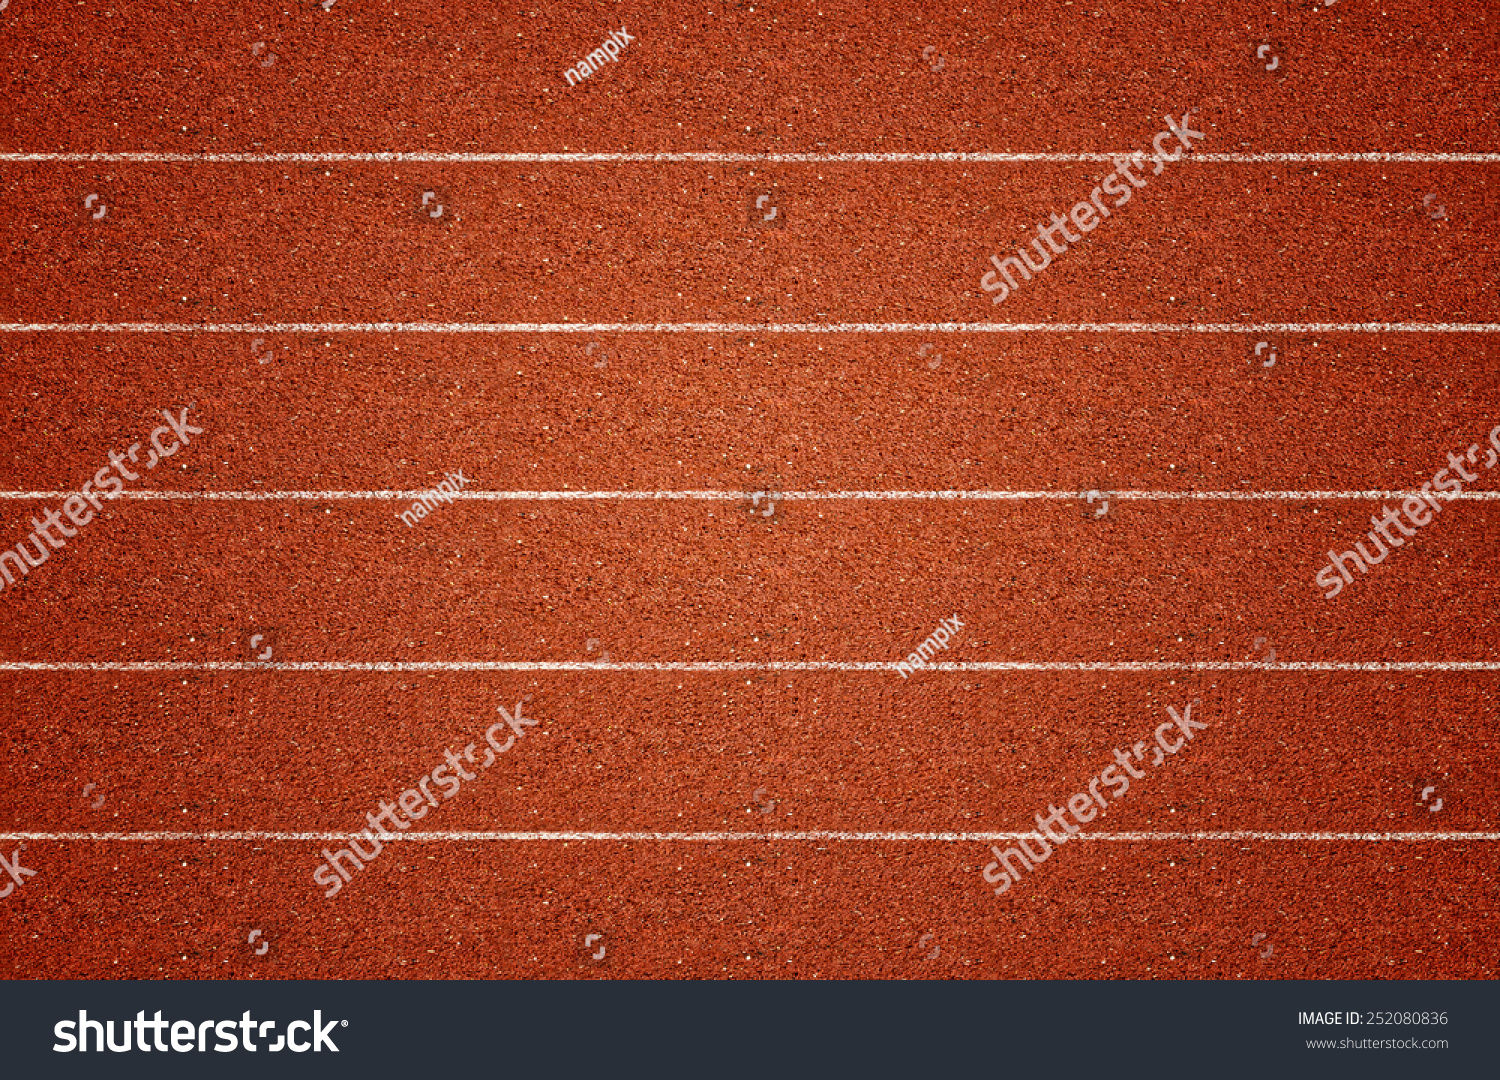 Running Track Top View Stock Photo (Royalty Free ...  |Running Track Birds Eye View